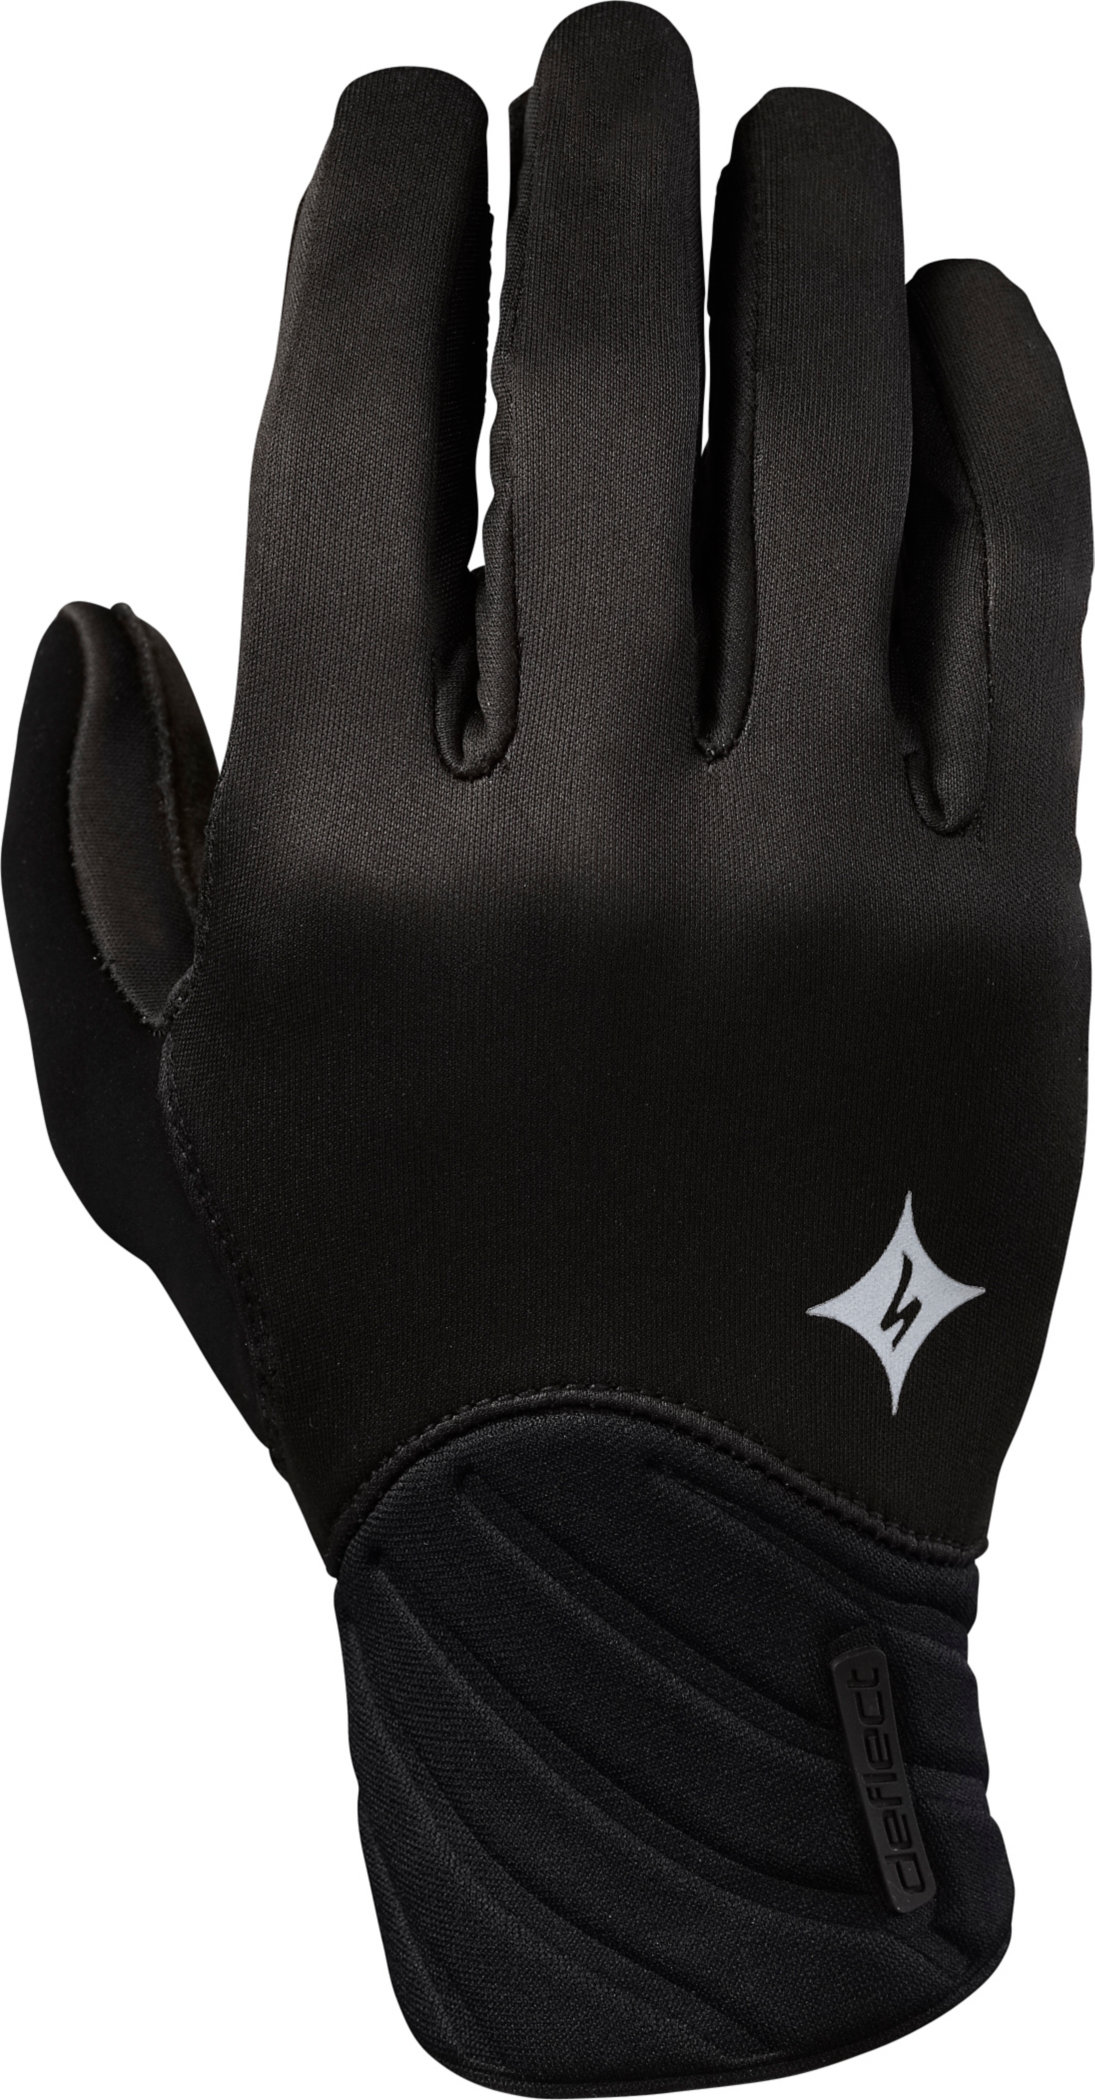 SPECIALIZED DEFLECT GLOVE LF WMN BLK M - Alpha Bikes